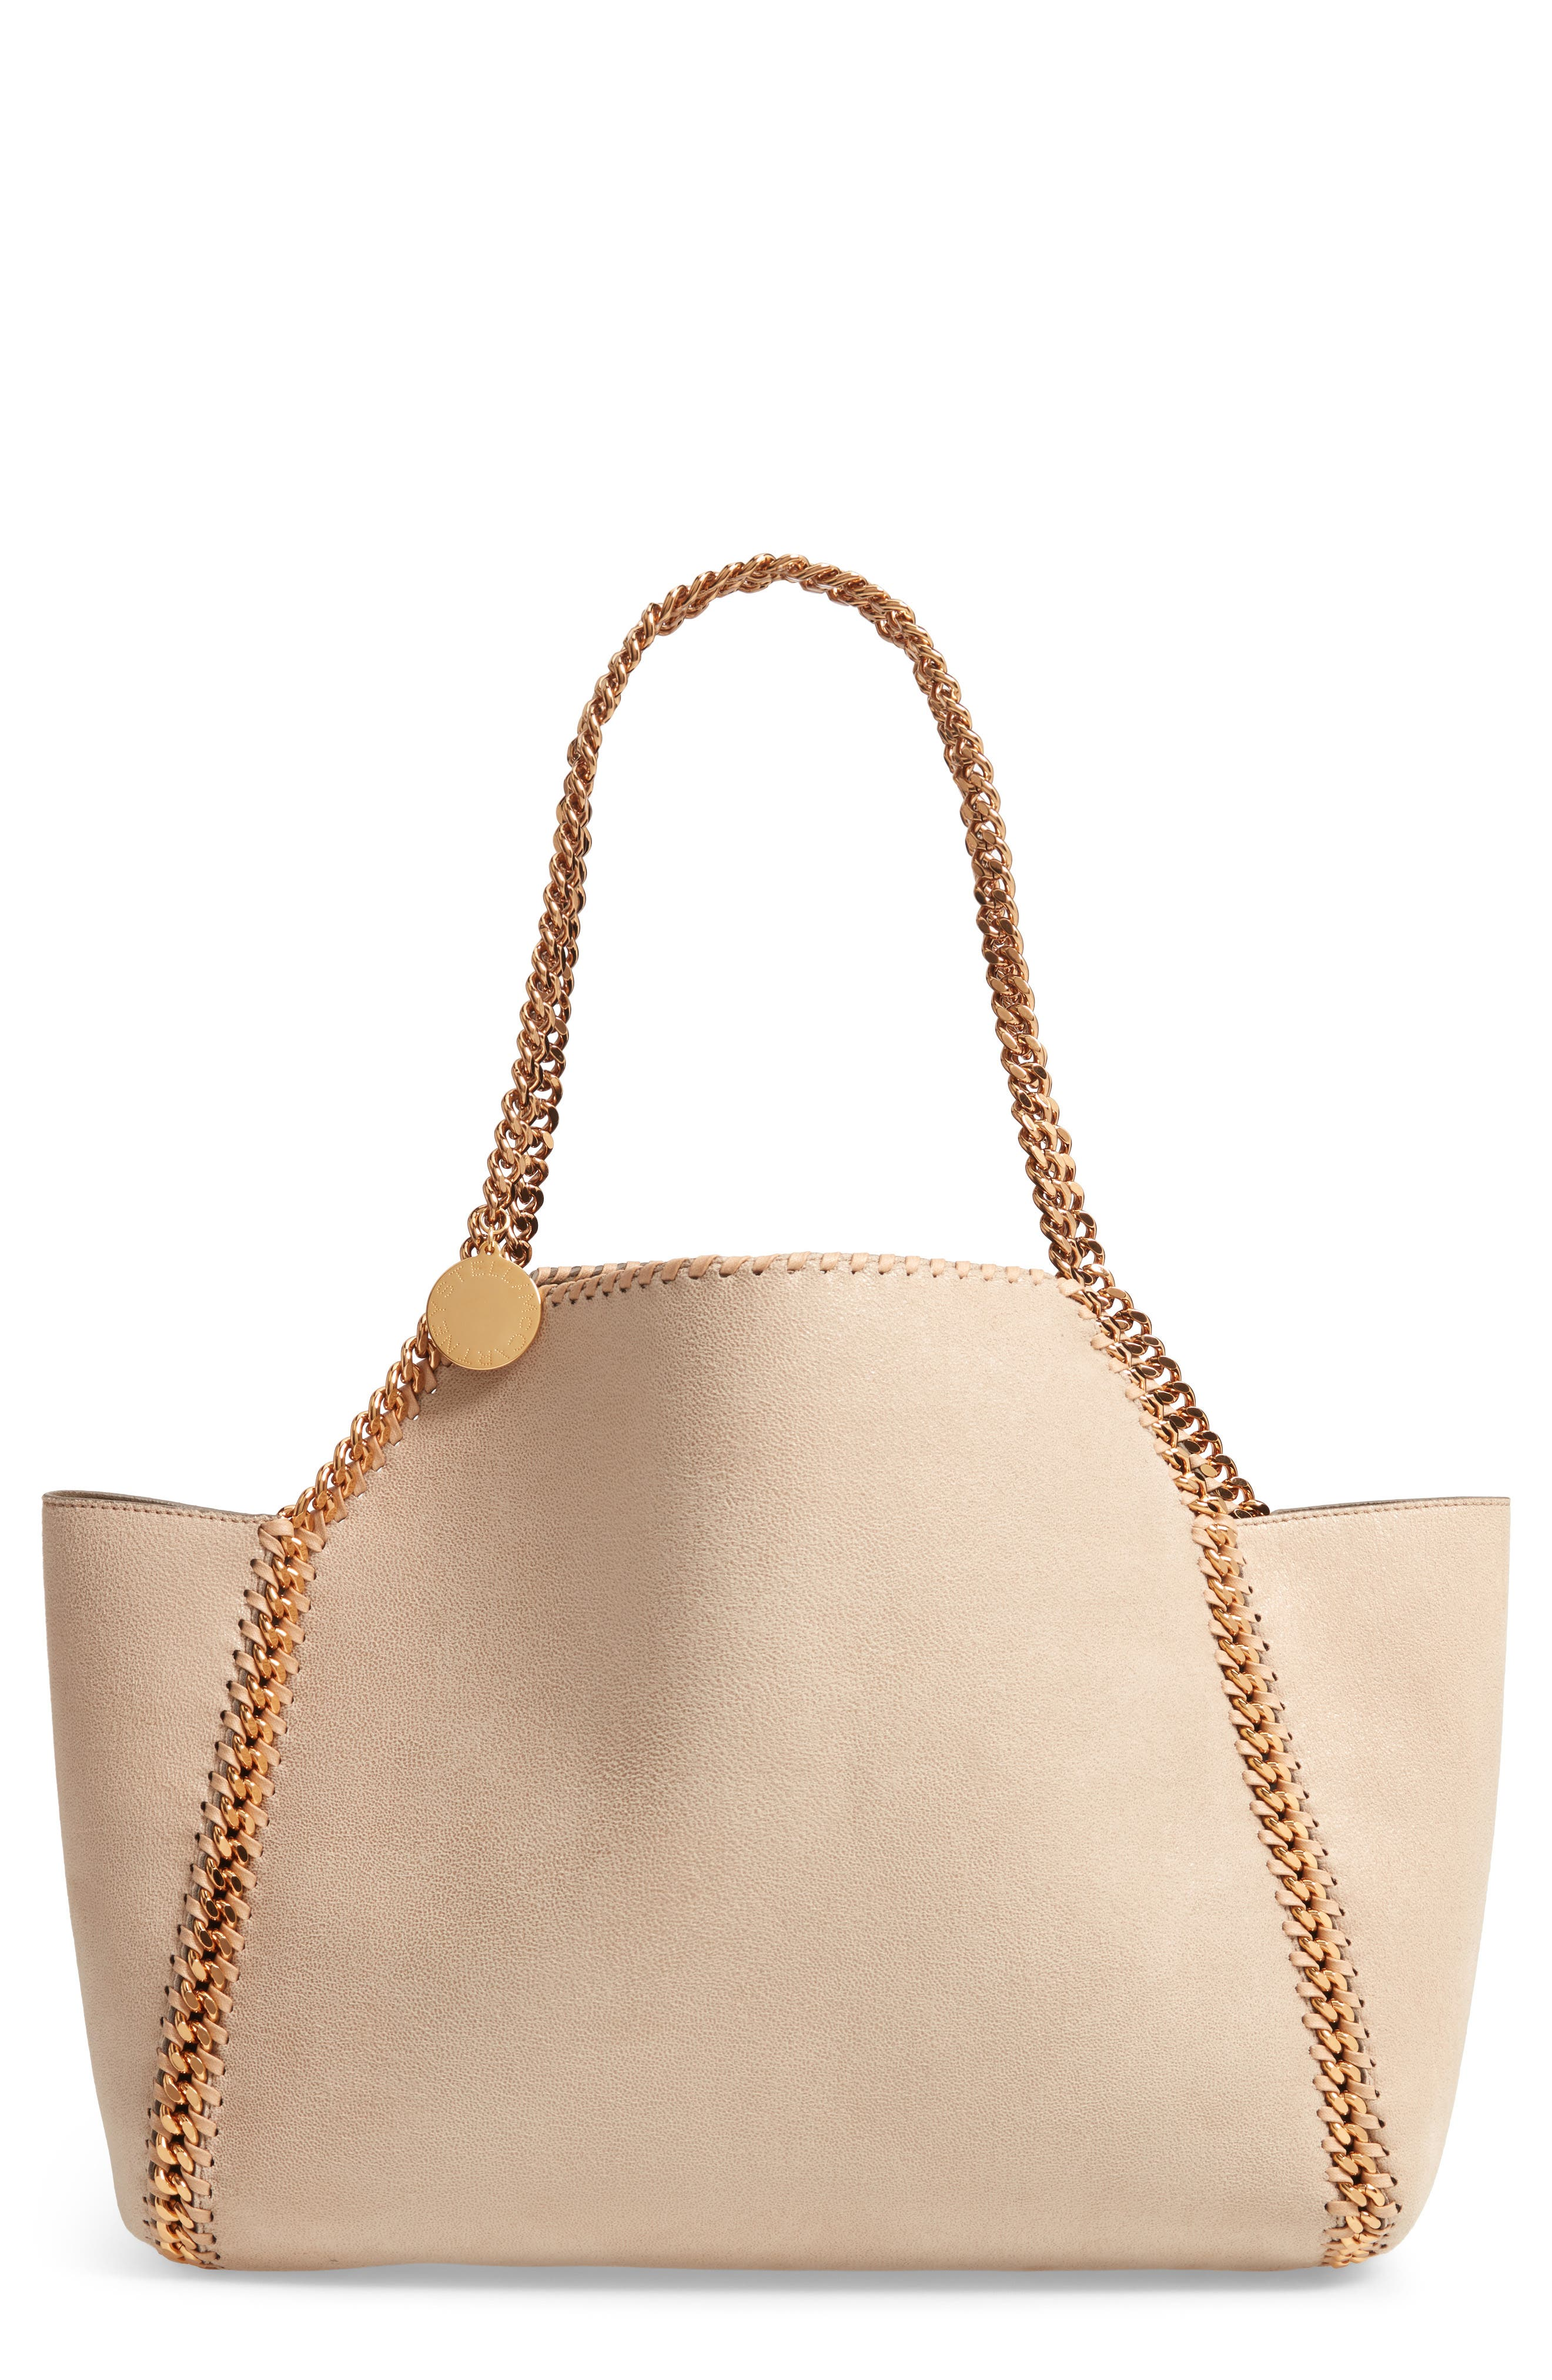 Shaggy Deer Reversible Faux Leather Tote,                         Main,                         color, CLOTTED CREAM